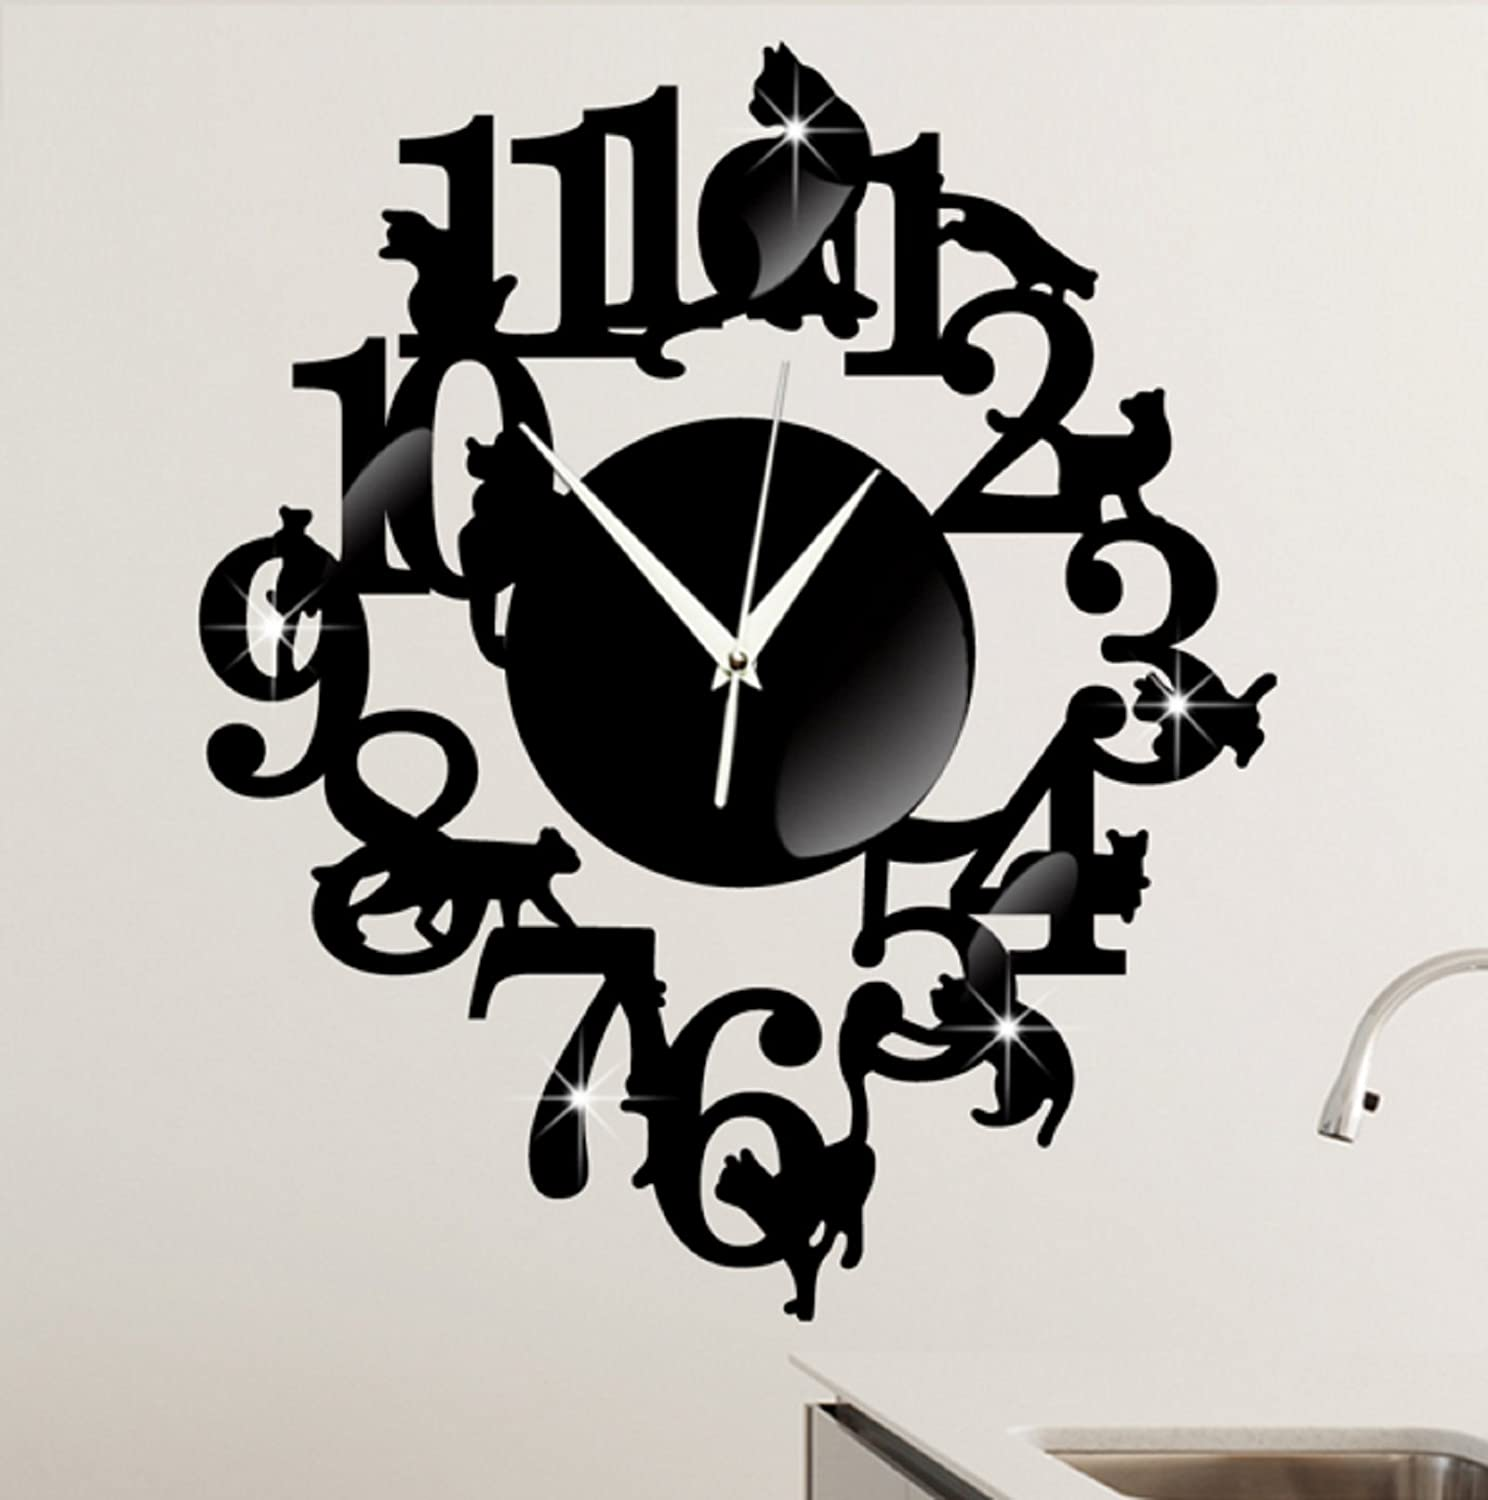 ... (Black Color) NEW home decor wandklok creative wall watch reloj Acrylic Cats Lovery large 3d vintage wall clocks modern design murale reloj pared: Baby